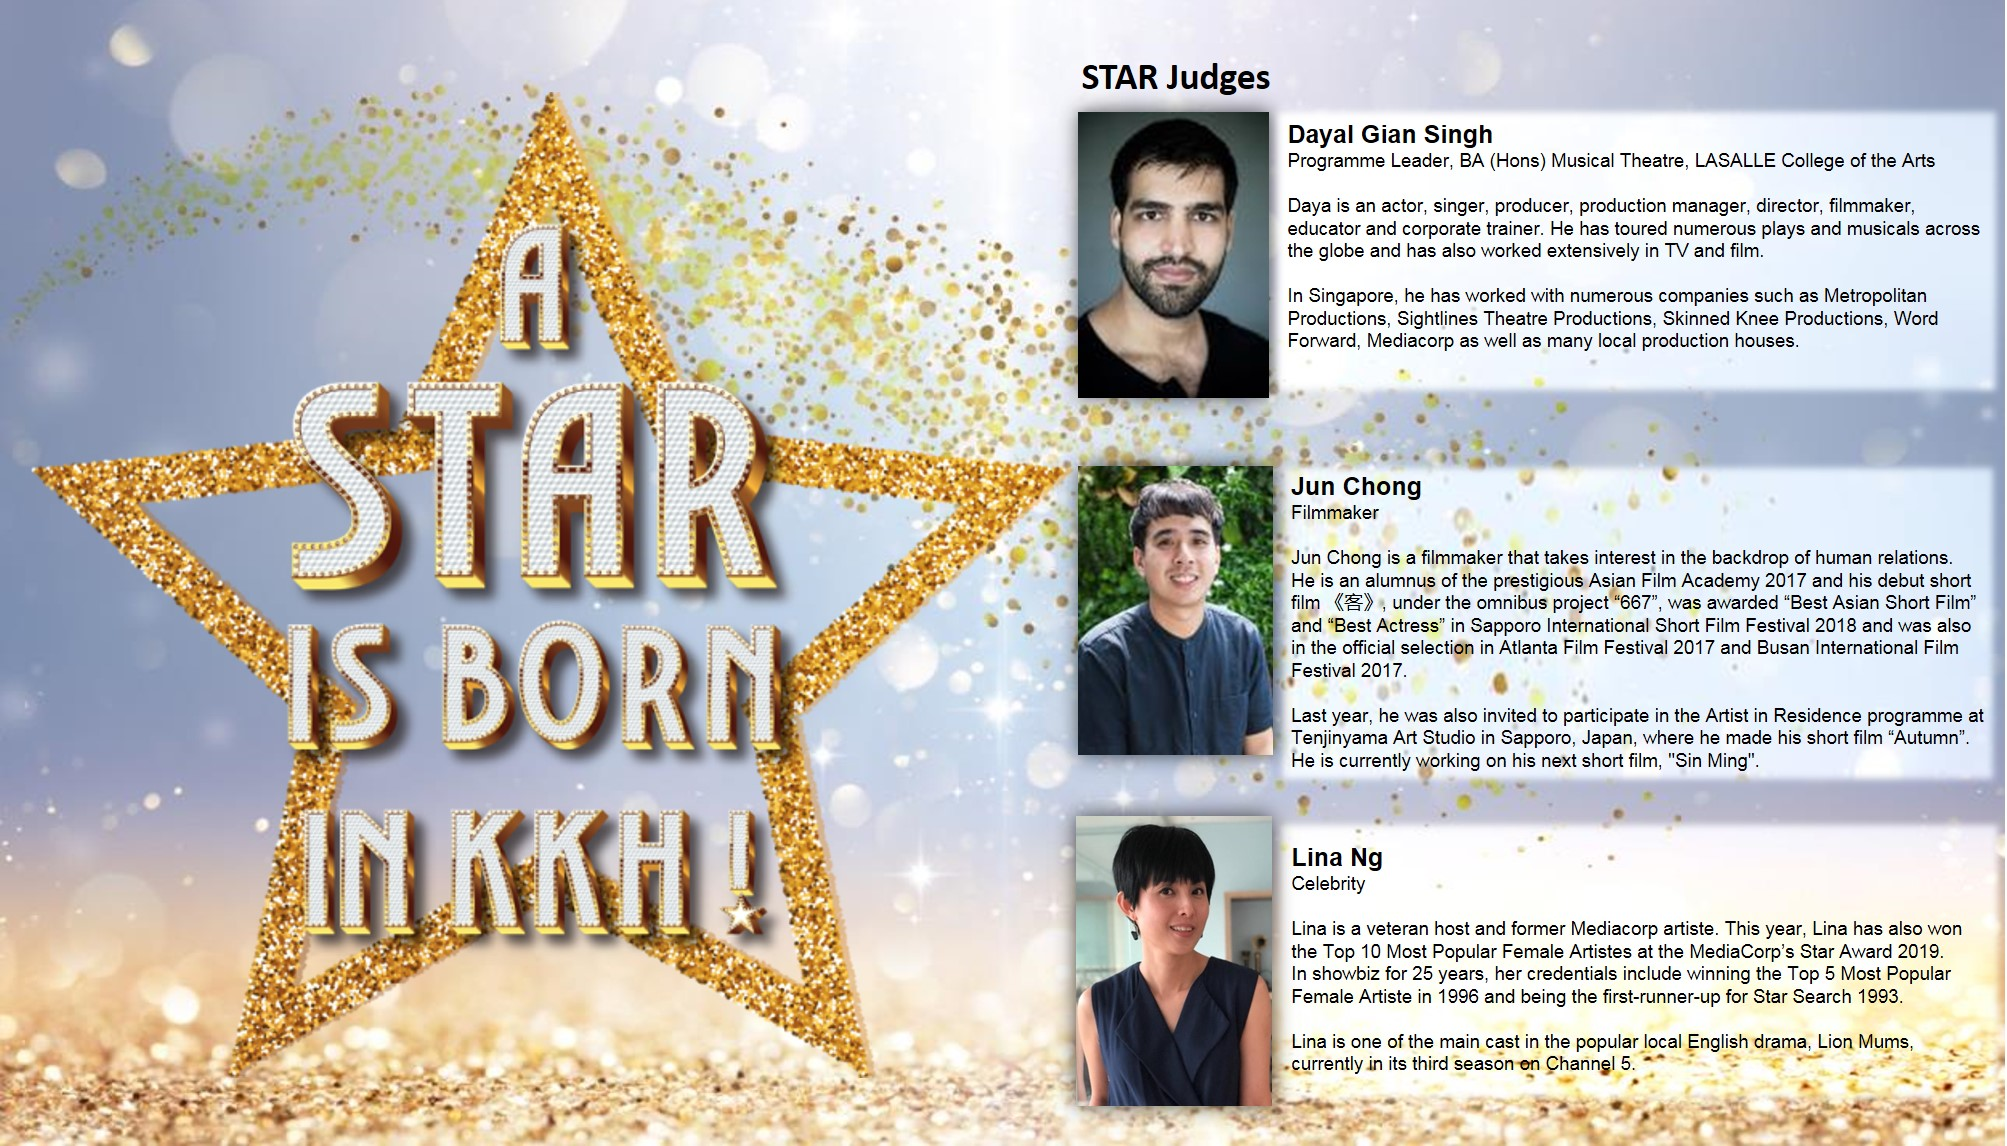 A Star is BORN IN KKH! Contest – STAR Judges